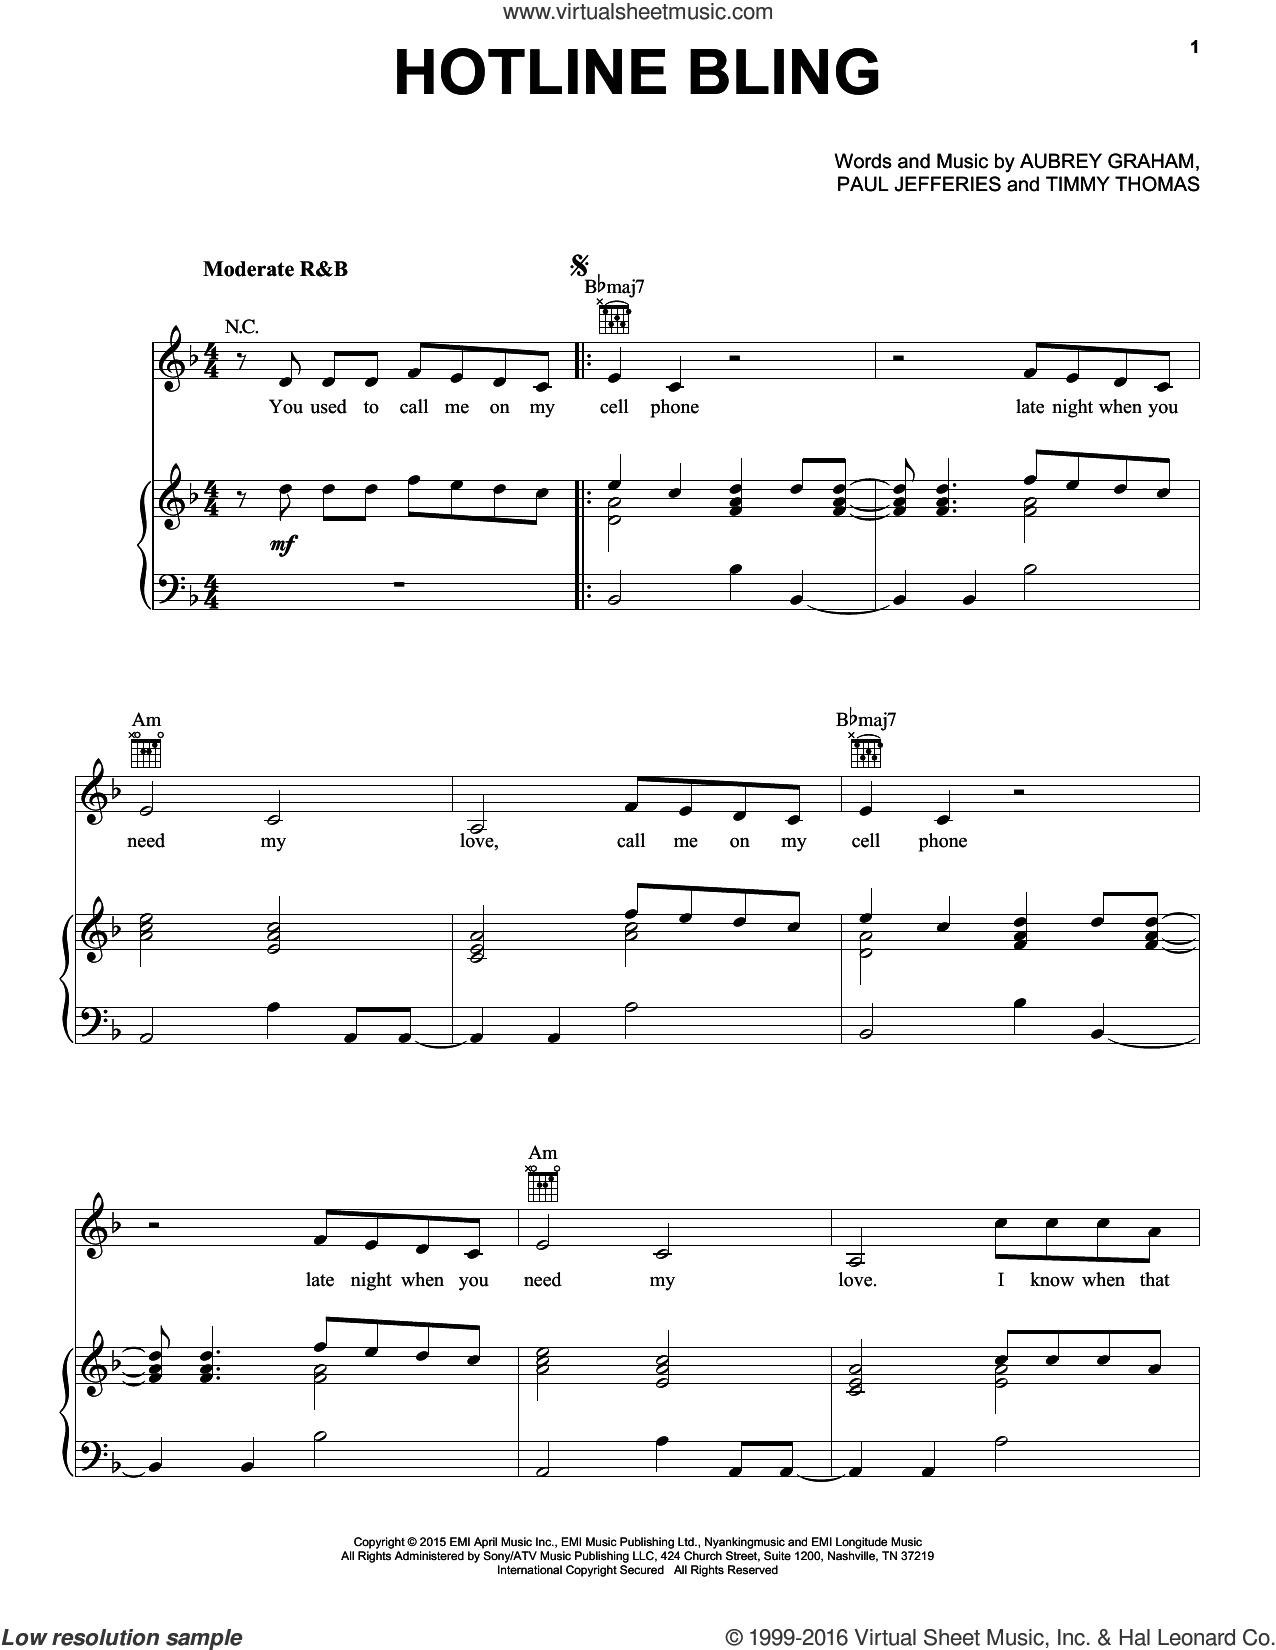 Hotline Bling sheet music for voice, piano or guitar by Drake, Aubrey Graham, Paul Jefferies and Timmy Thomas, intermediate skill level